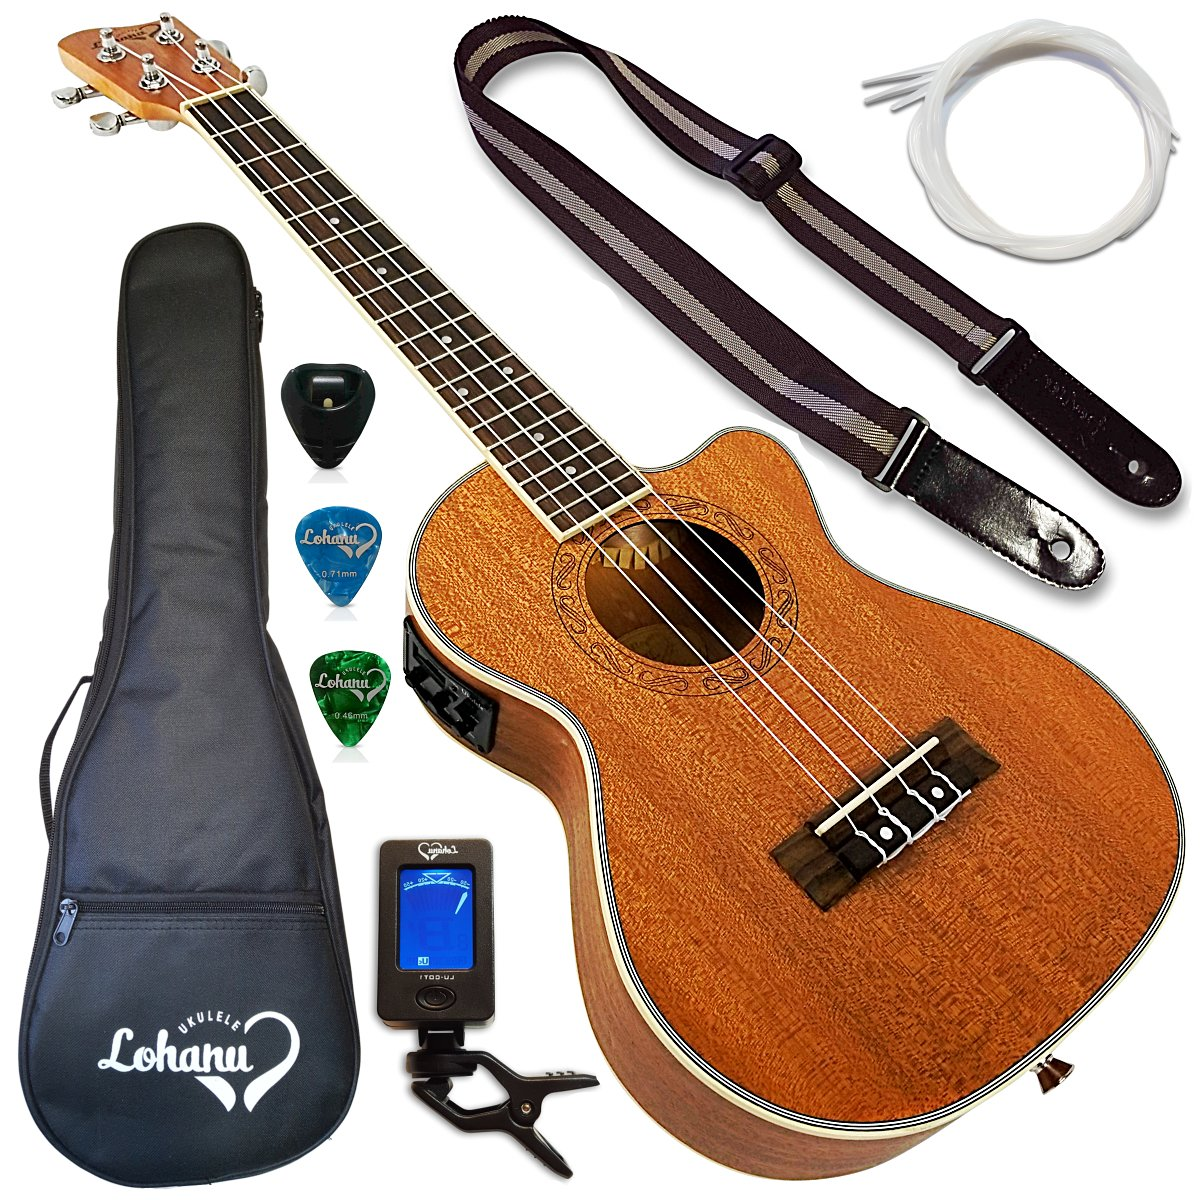 Lohanu Ukulele Cutaway Electric Tenor Size With 3 Band EQ With All Accessories Included!